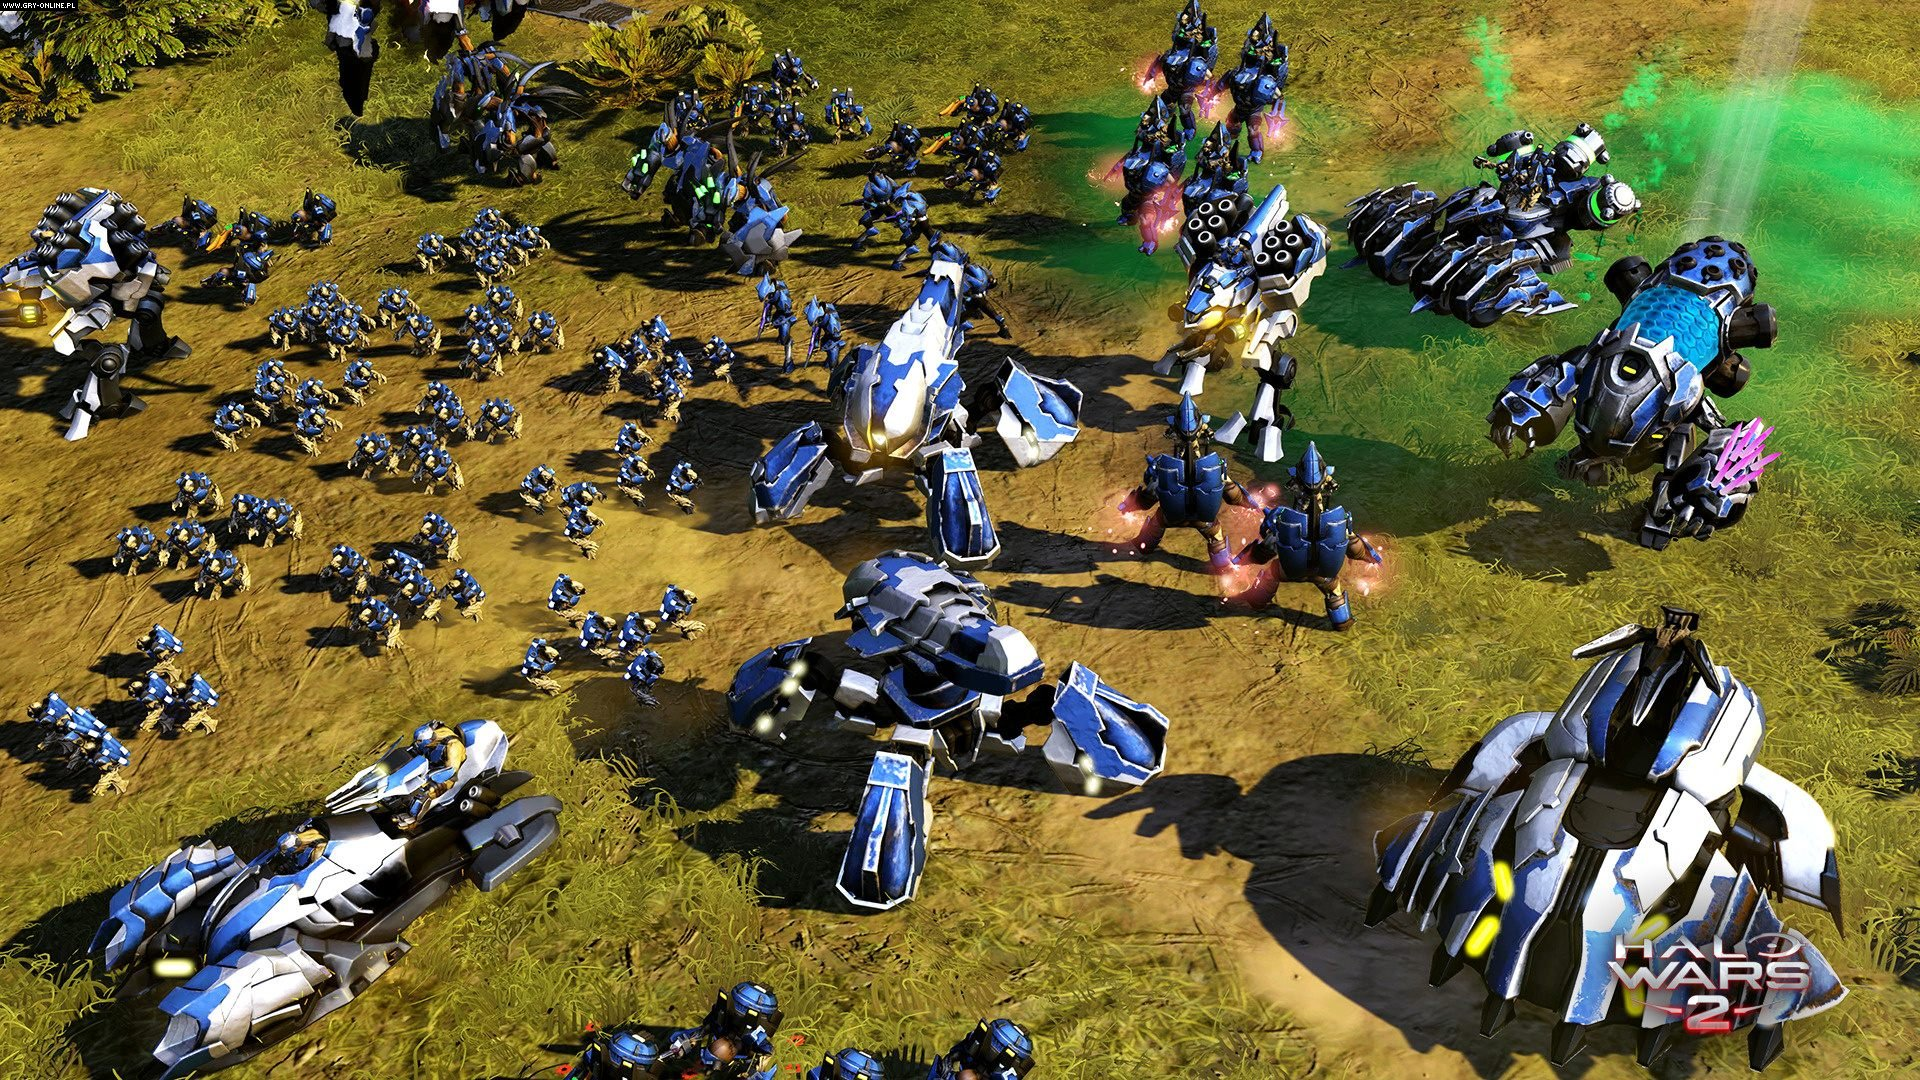 Halo Wars 2 PC, XONE Gry Screen 7/47, Creative Assembly, THQ Nordic / Nordic Games